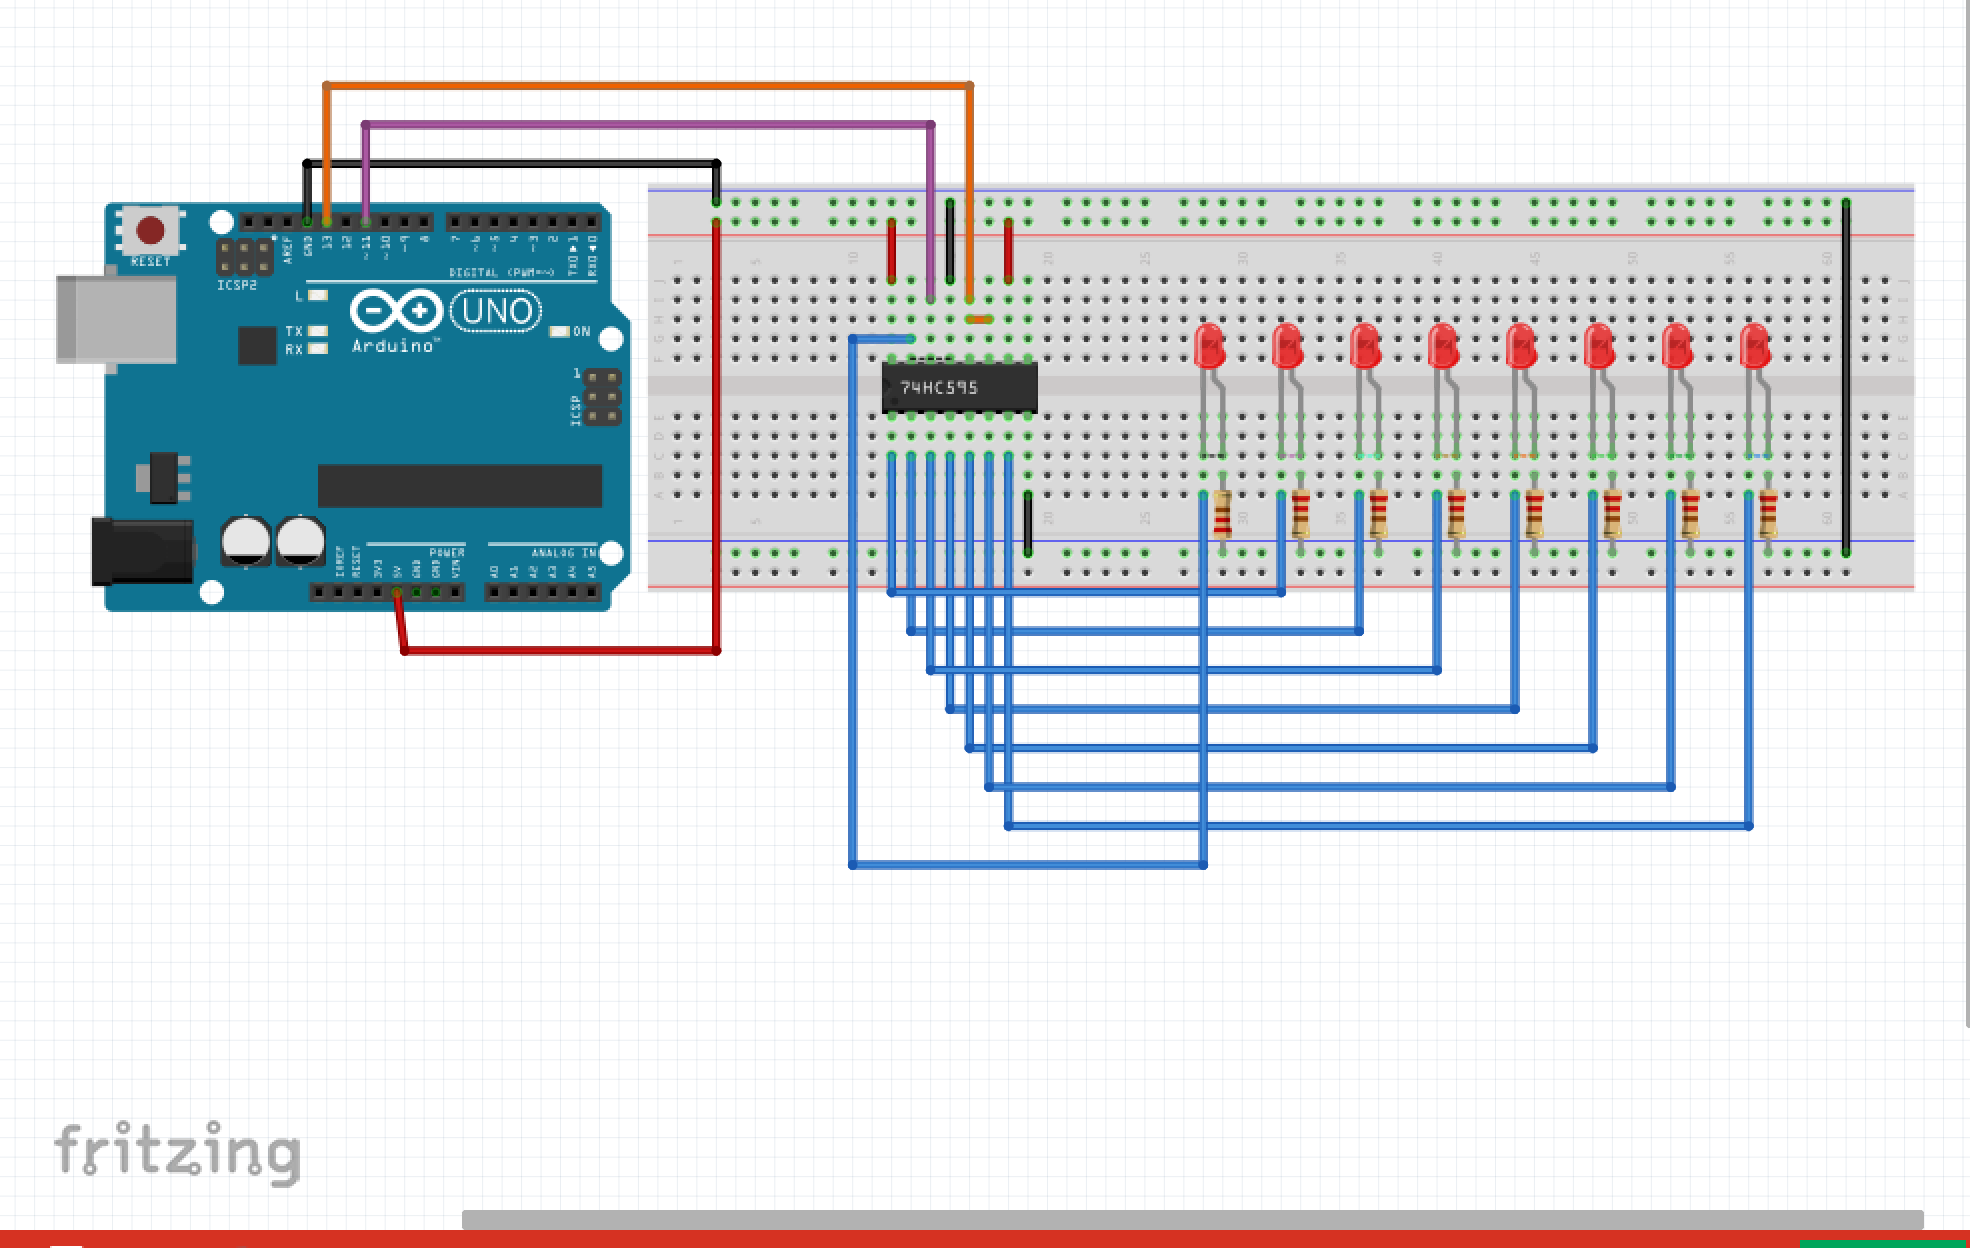 Pcb From Concept To Design Fabrication And Testing Using Fritzing Arduino Circuit Board Schematics Further Puter Chip Schematic In C The Code Send An 8 Bit Value 74595 Is Simply